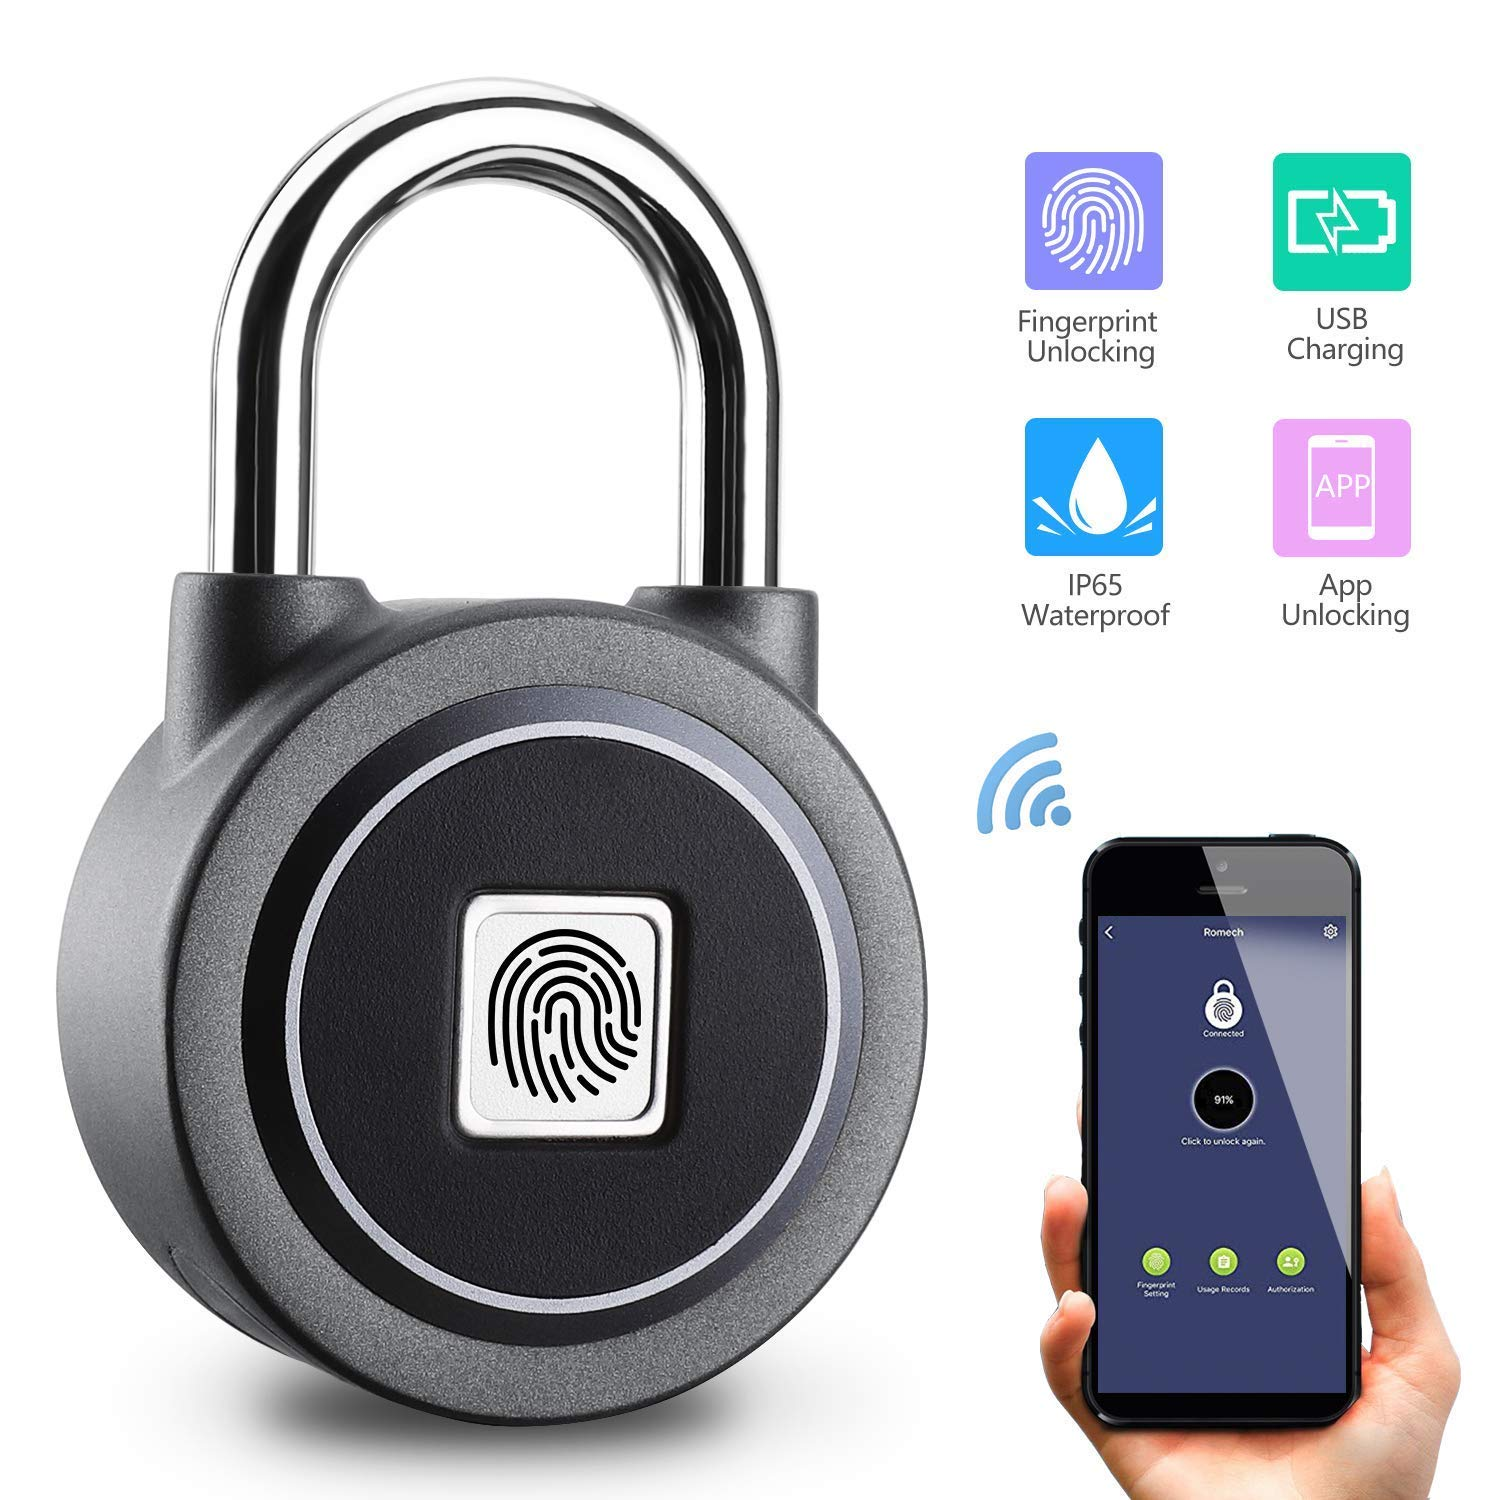 Fingerprint Padlock, Bluetooth Connection Metal Waterproof, Fingerprint Lock Suitable for House Door, Suitcase, Backpack, Gym, Bike, Office, APP is Suitable for Android/iOS, Support USB Charging